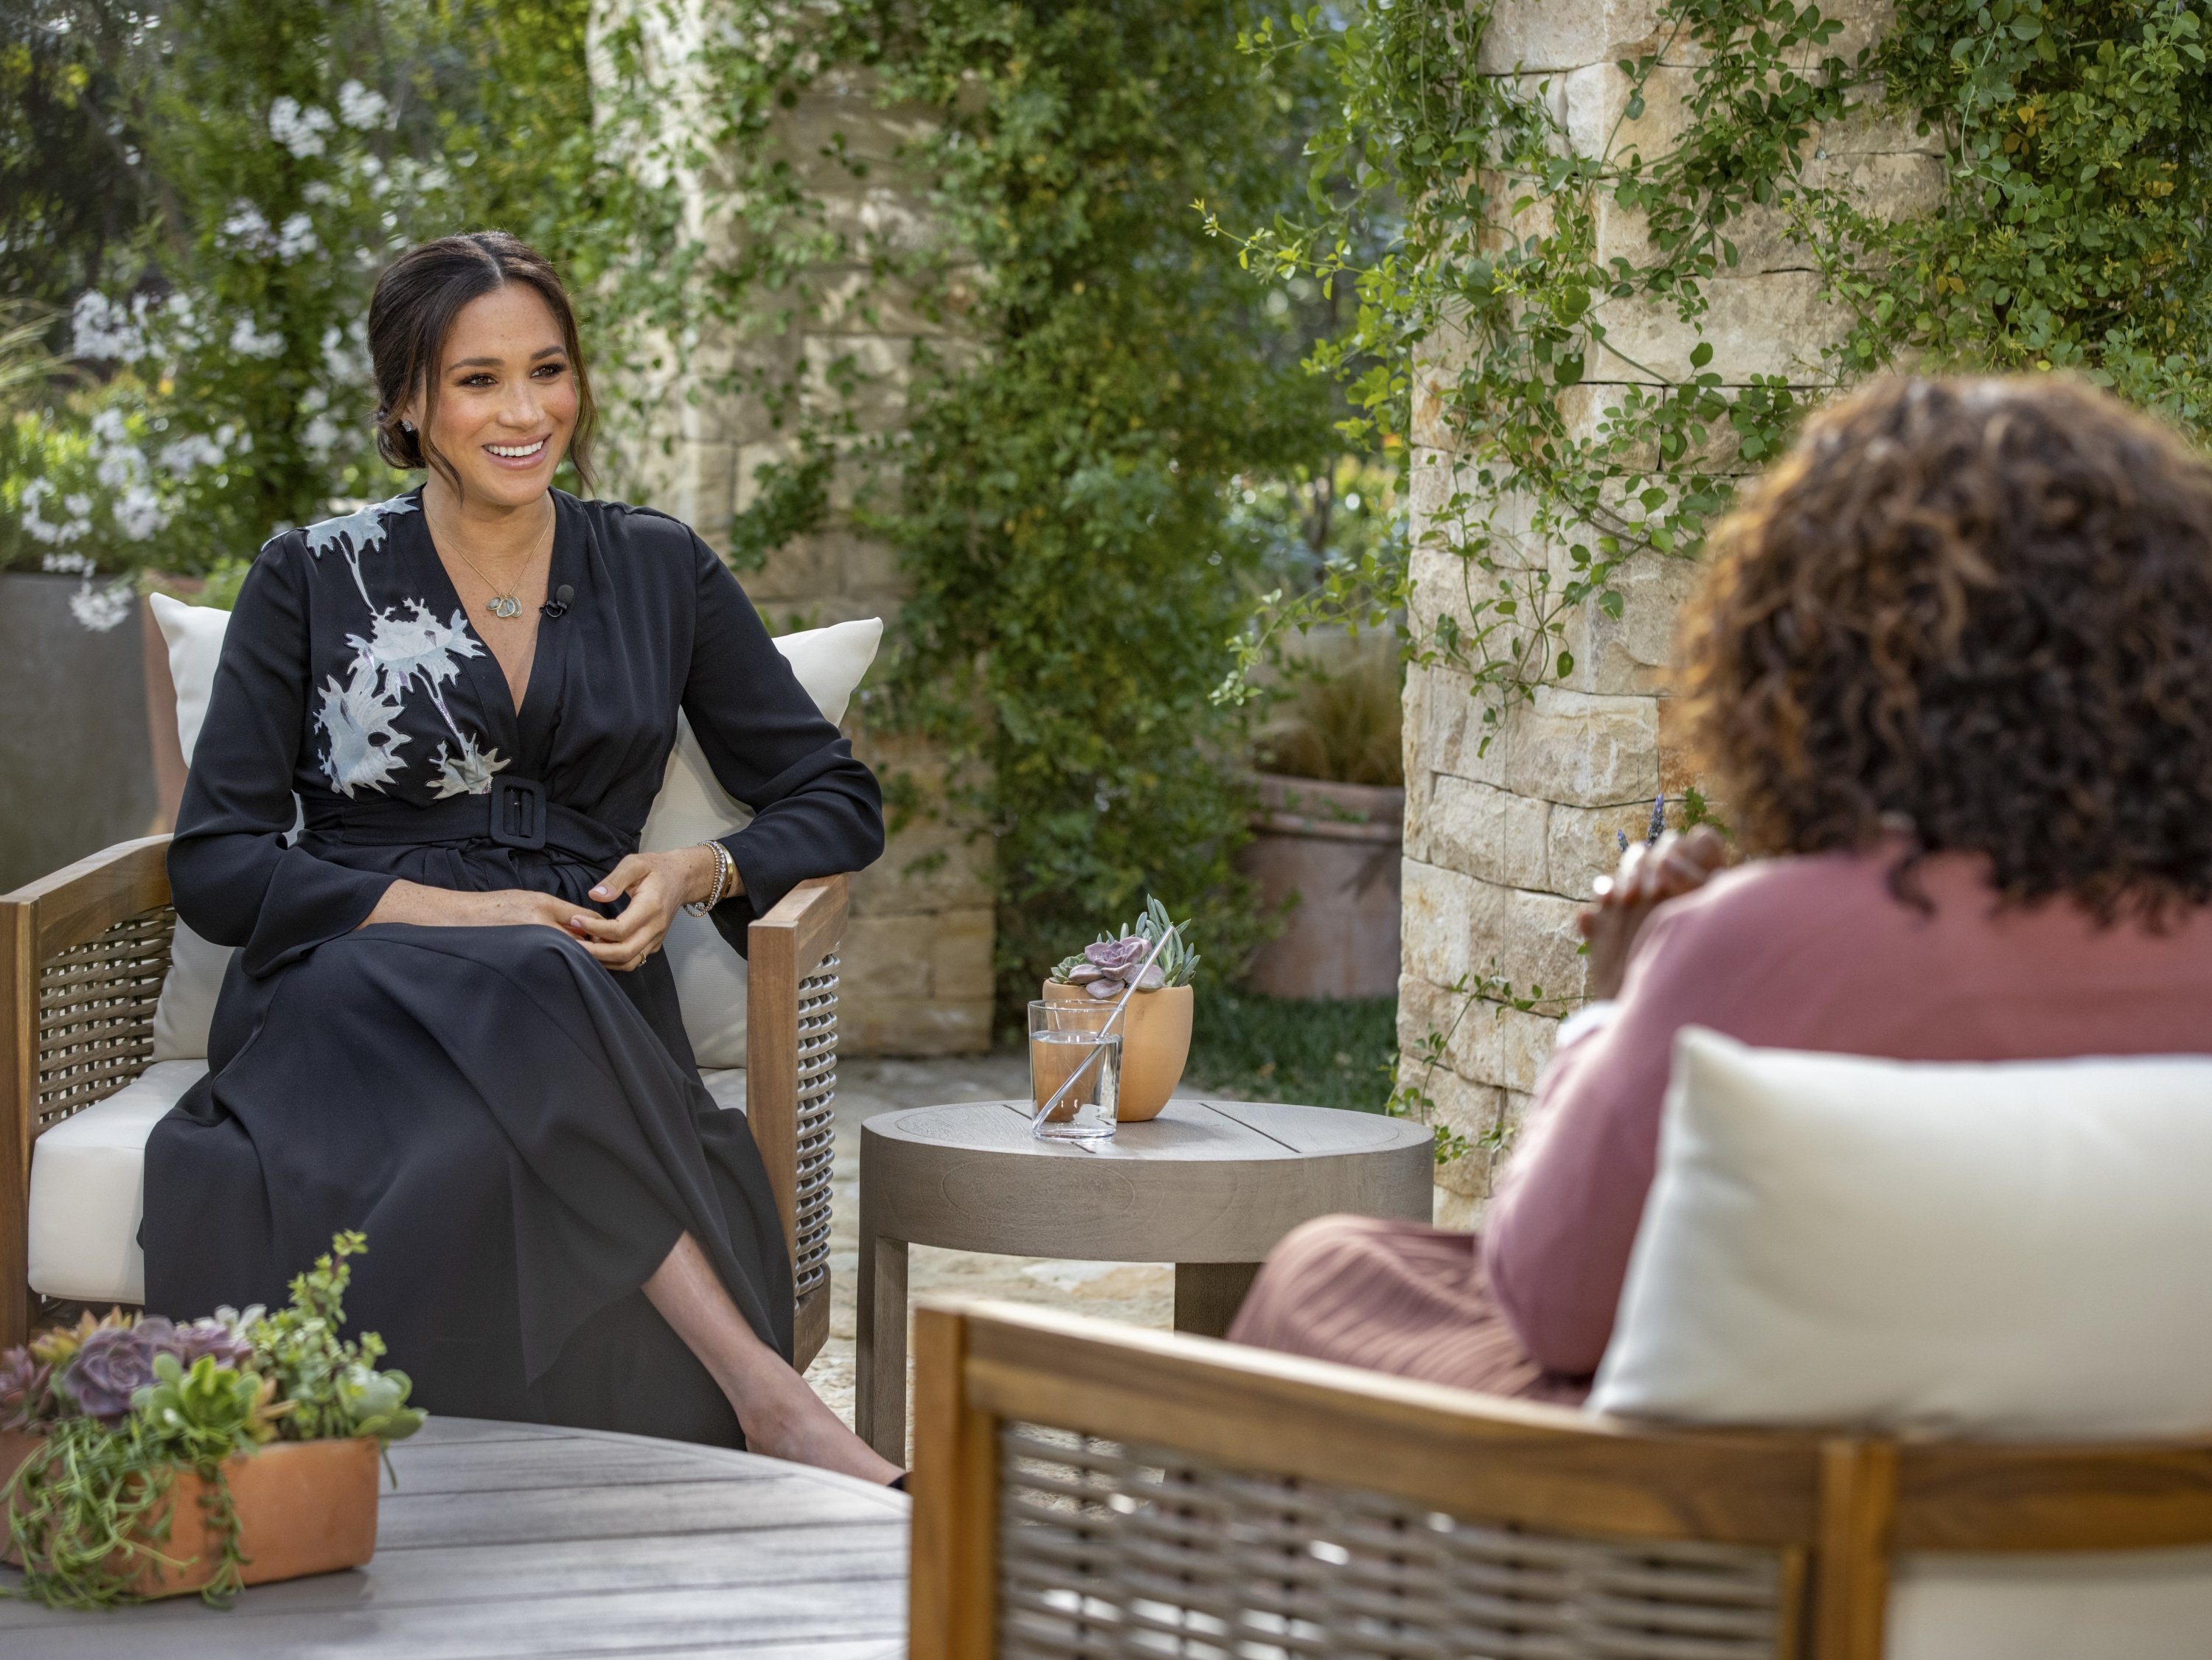 Meghan, Duchess of Sussex (Left), speaks with U.S. television host Oprah Winfrey during the interview, U.S., March 7, 2021. (AP)